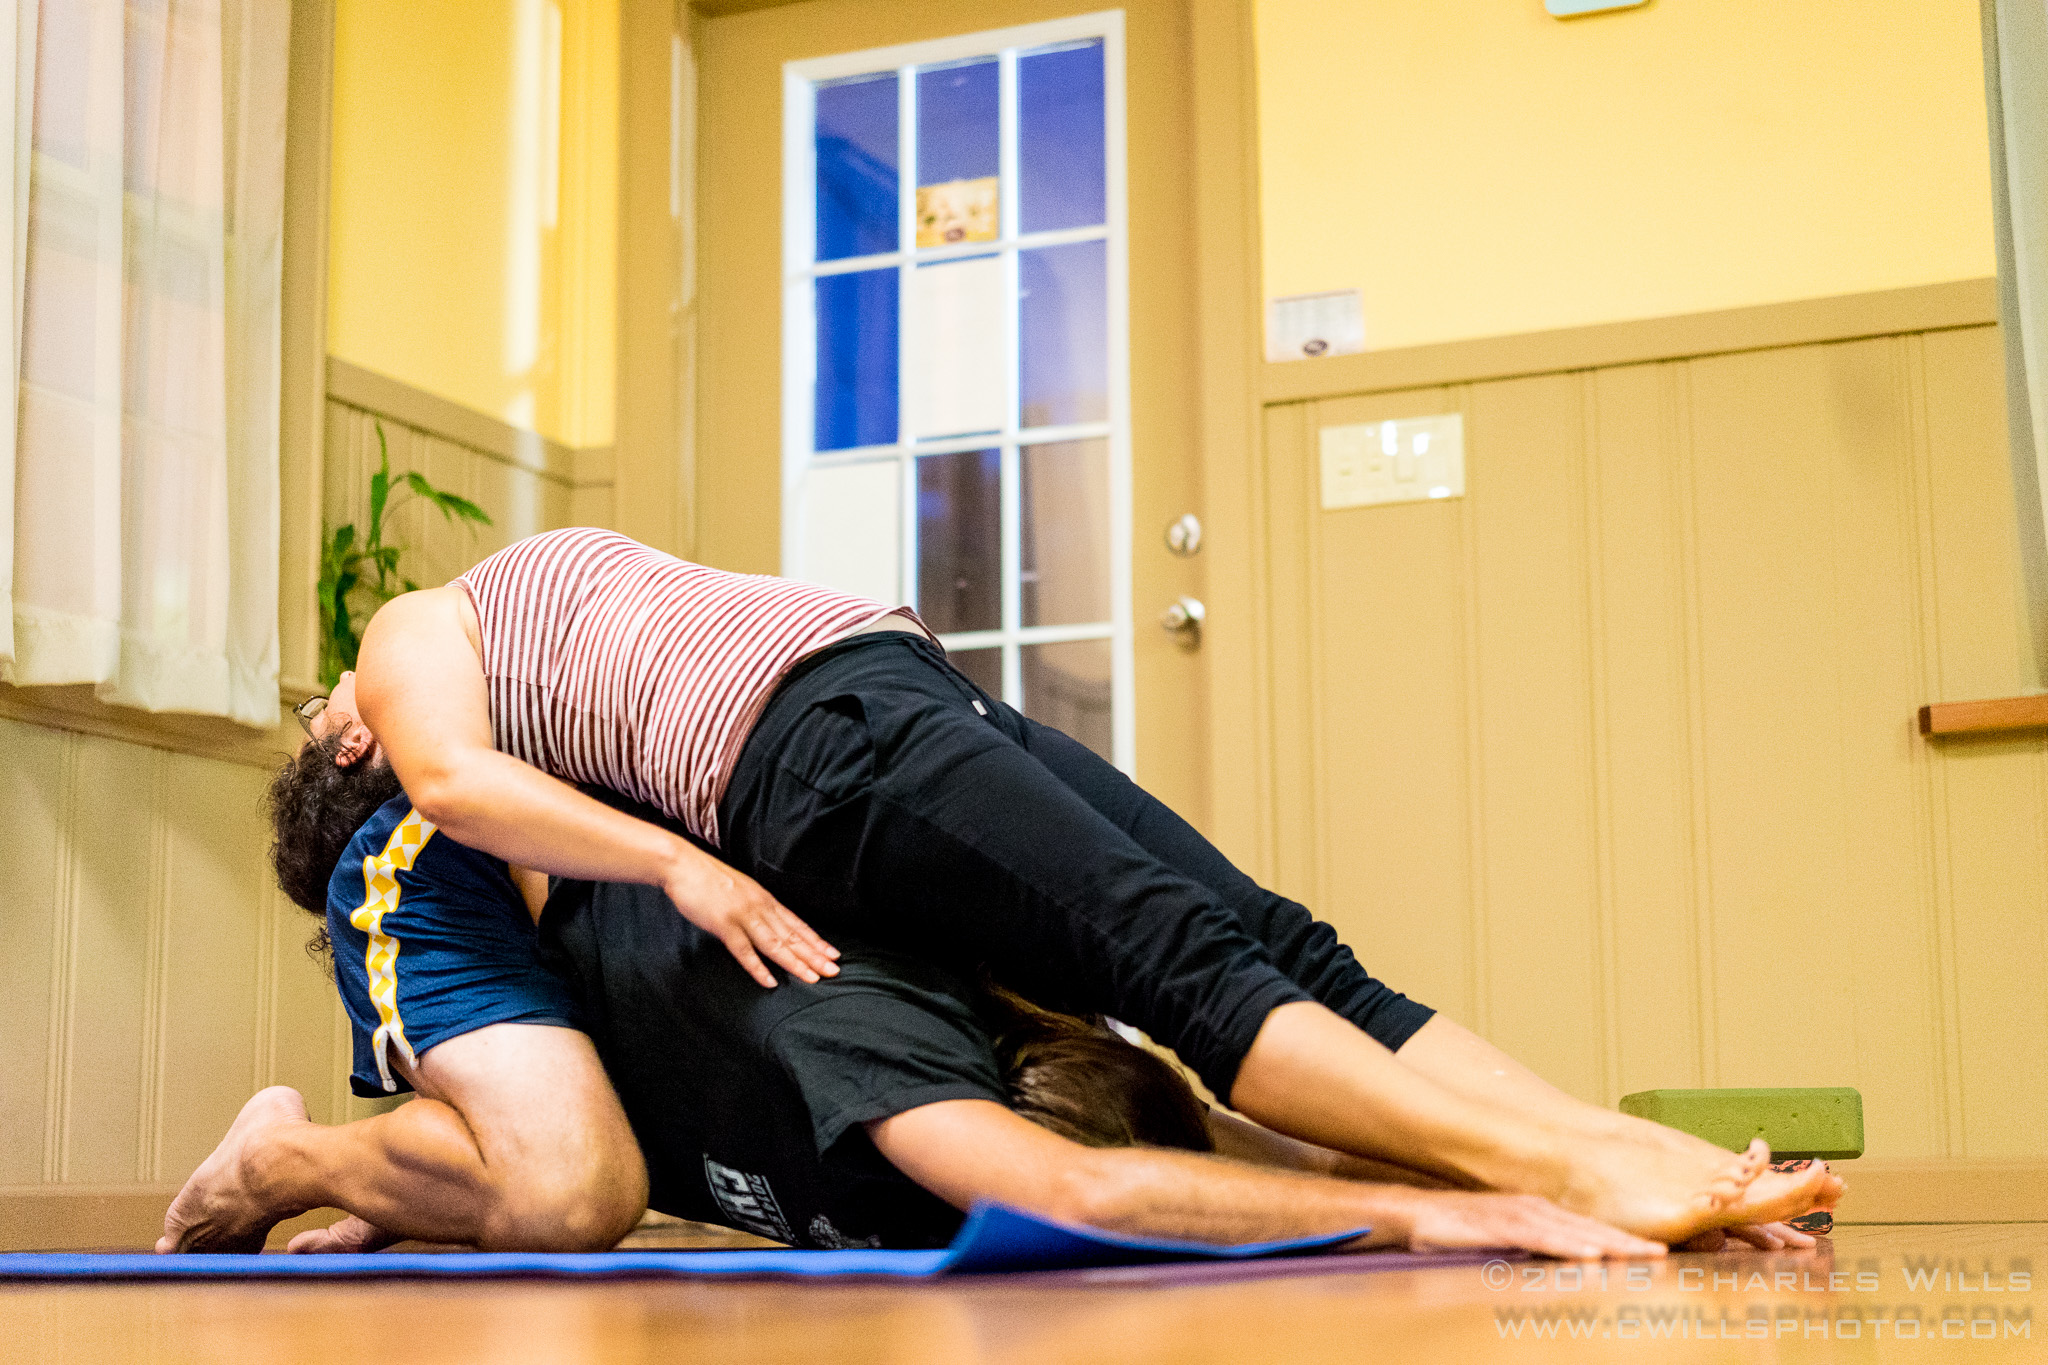 Child's pose and modified backbend